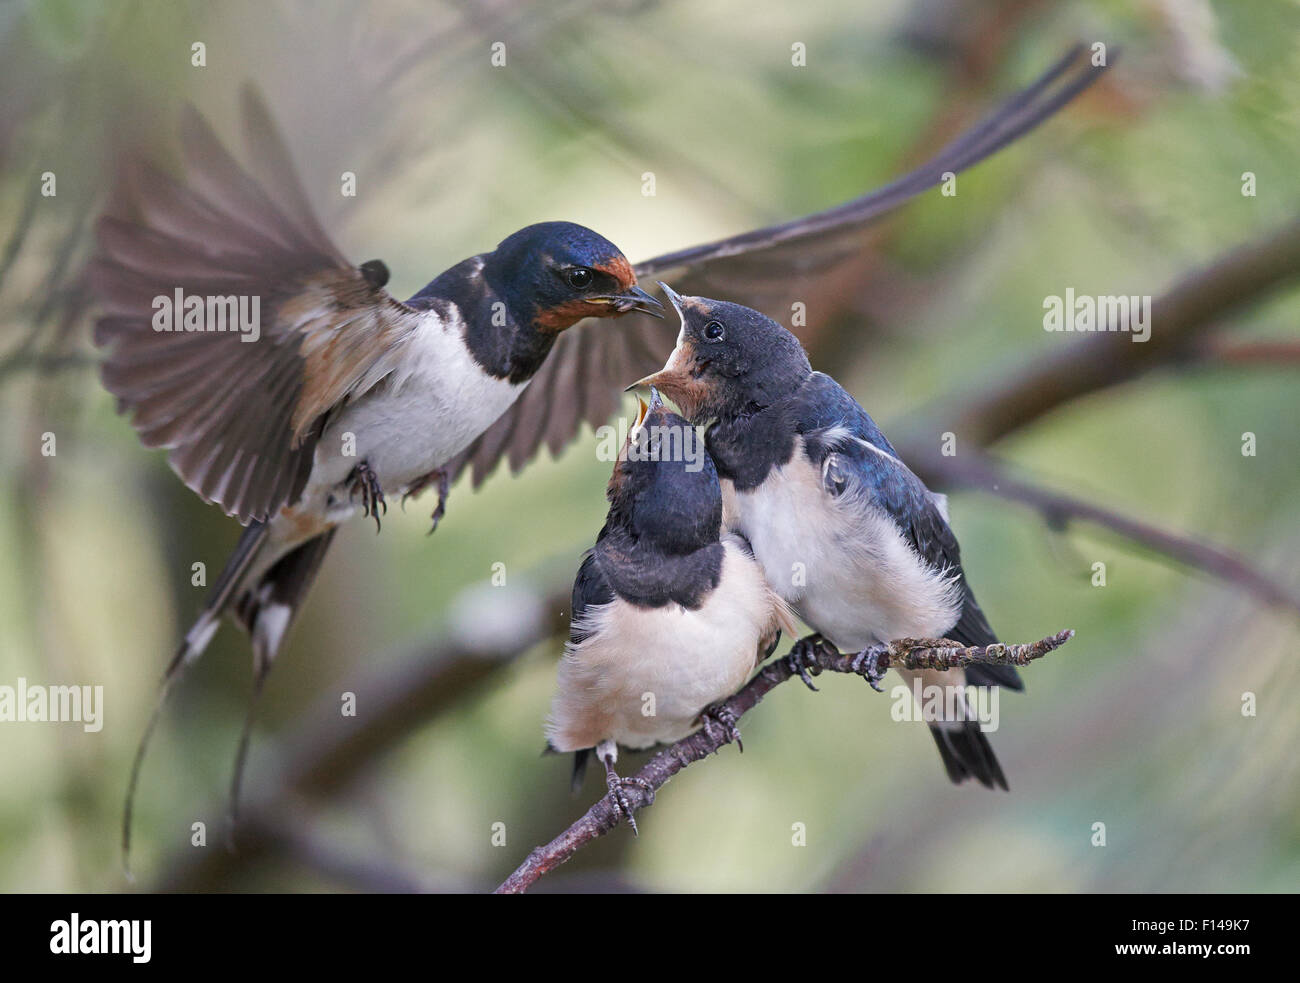 Swallow (Hirundo rustica) feeding chicks, Uto, Finland, July. - Stock Image